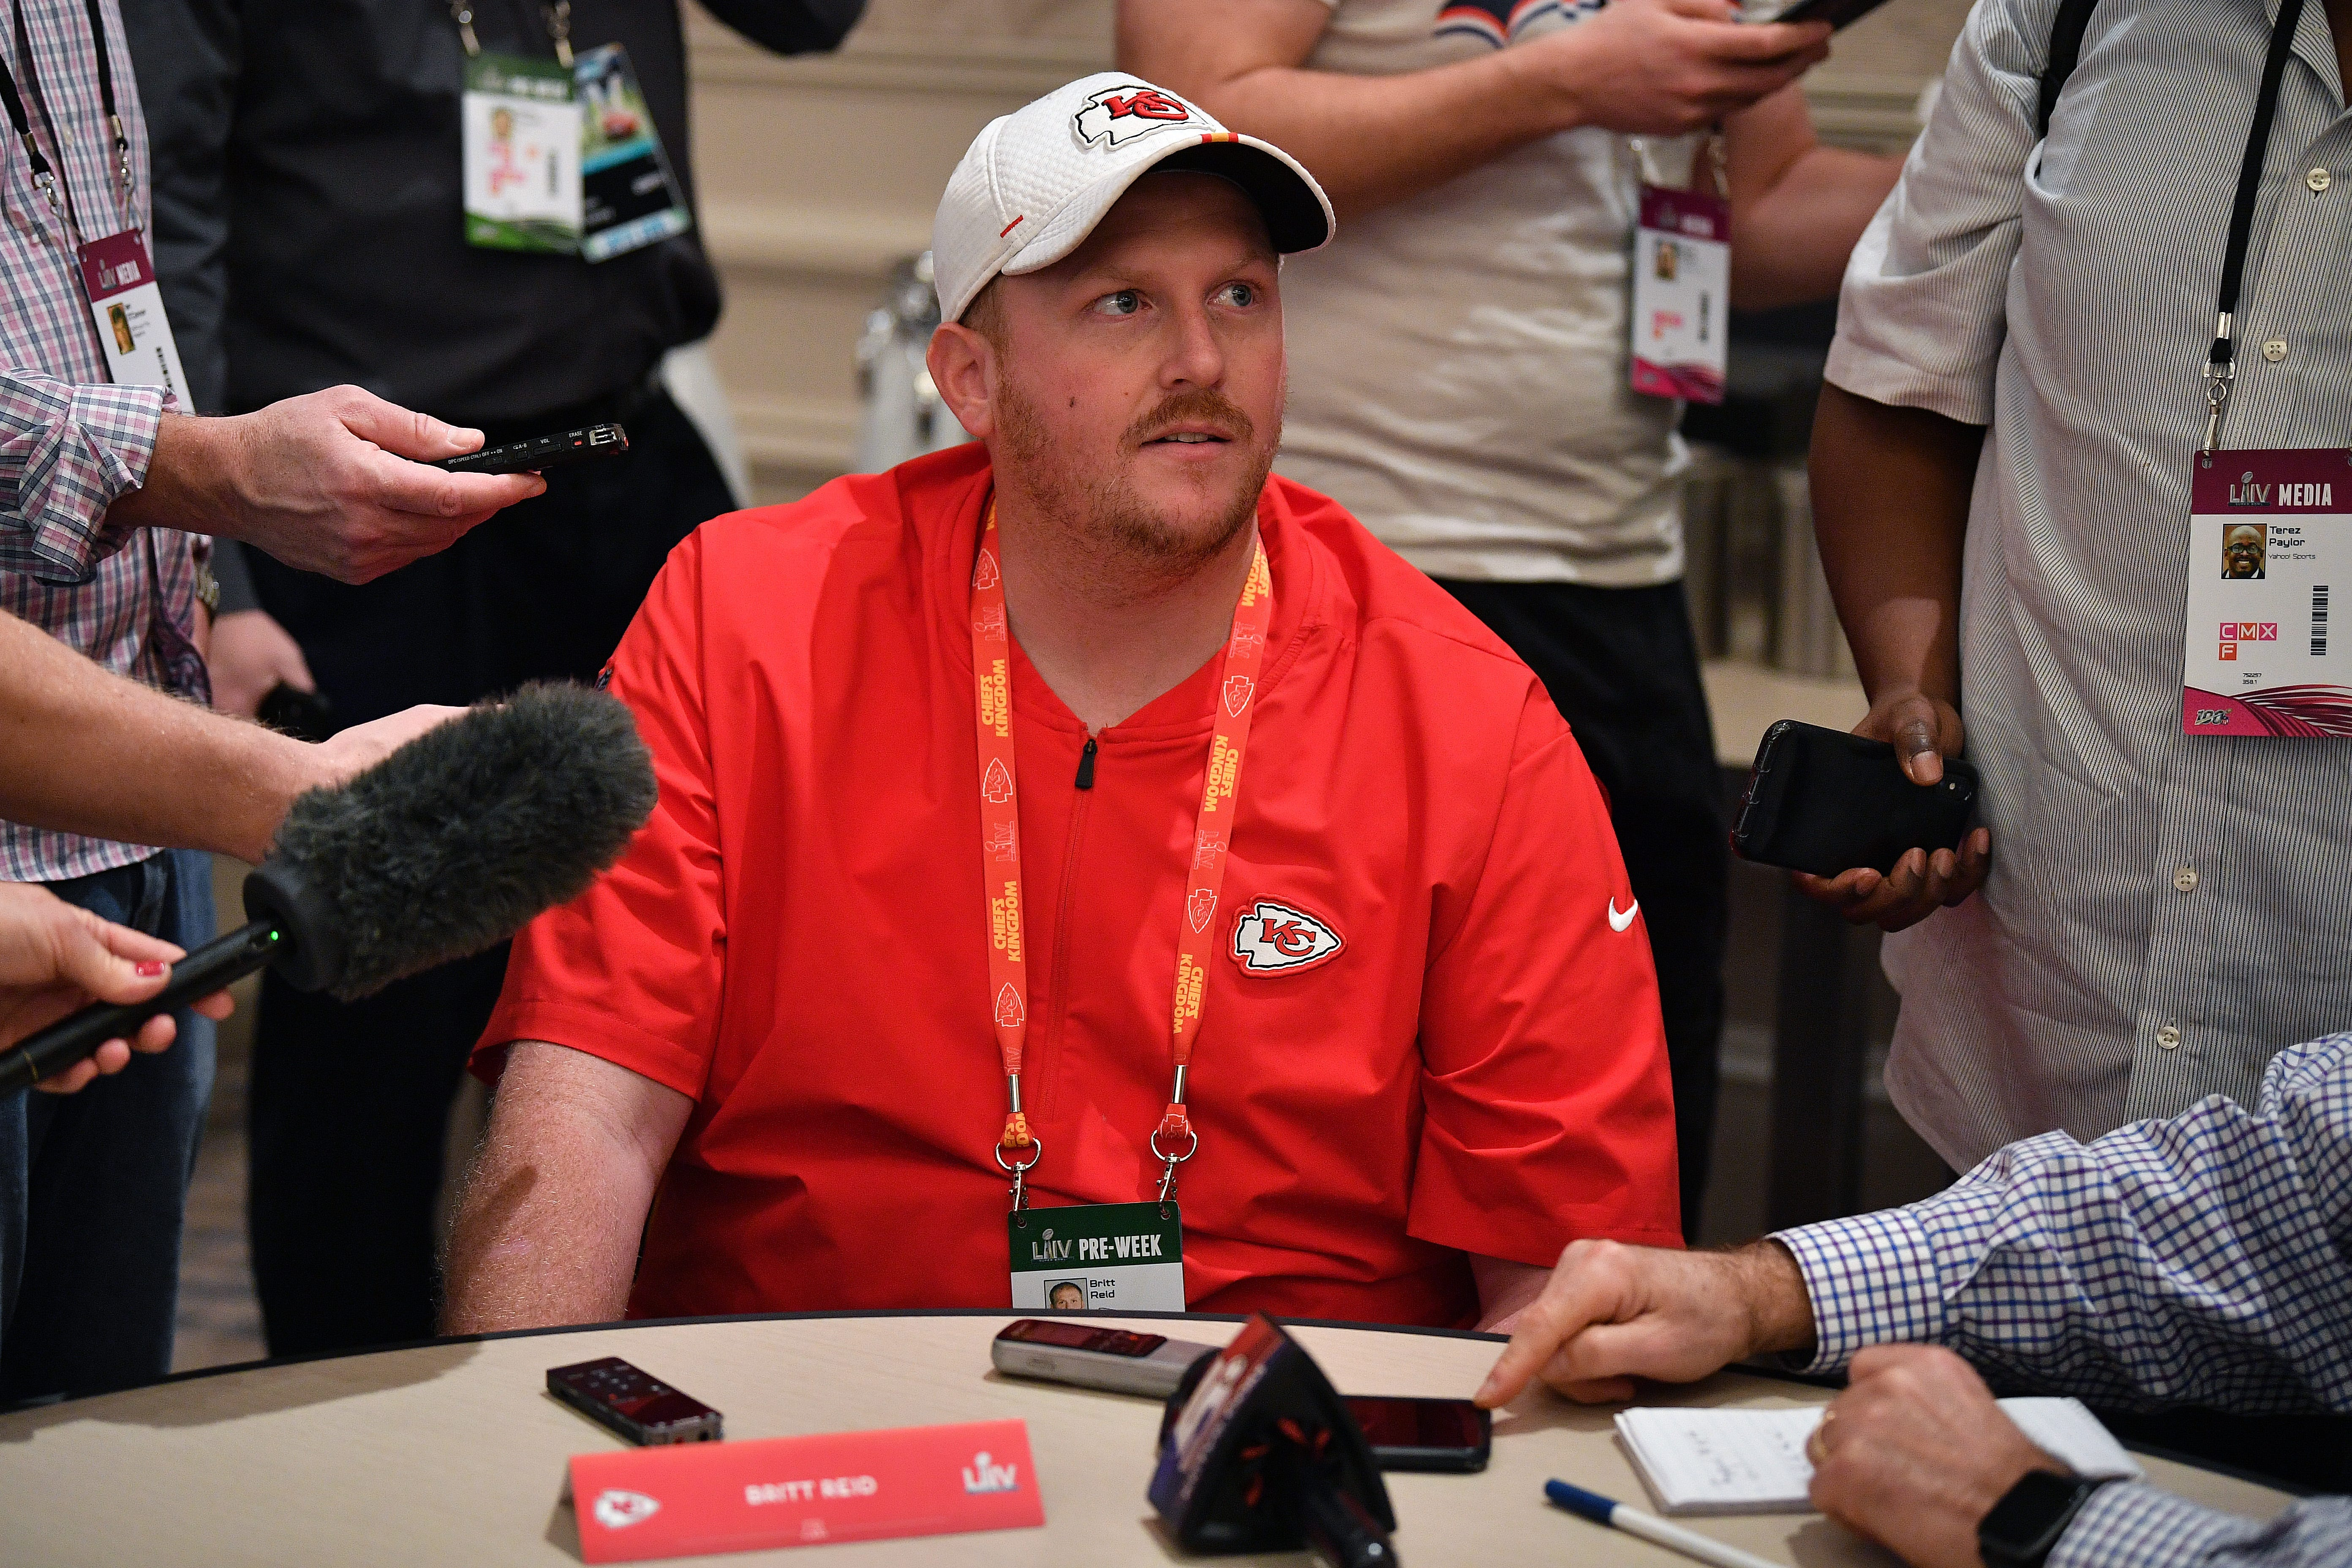 Opinion: Chiefs must be transparent about Britt Reid as he s charged with DWI in crash that left a child with brain injuries